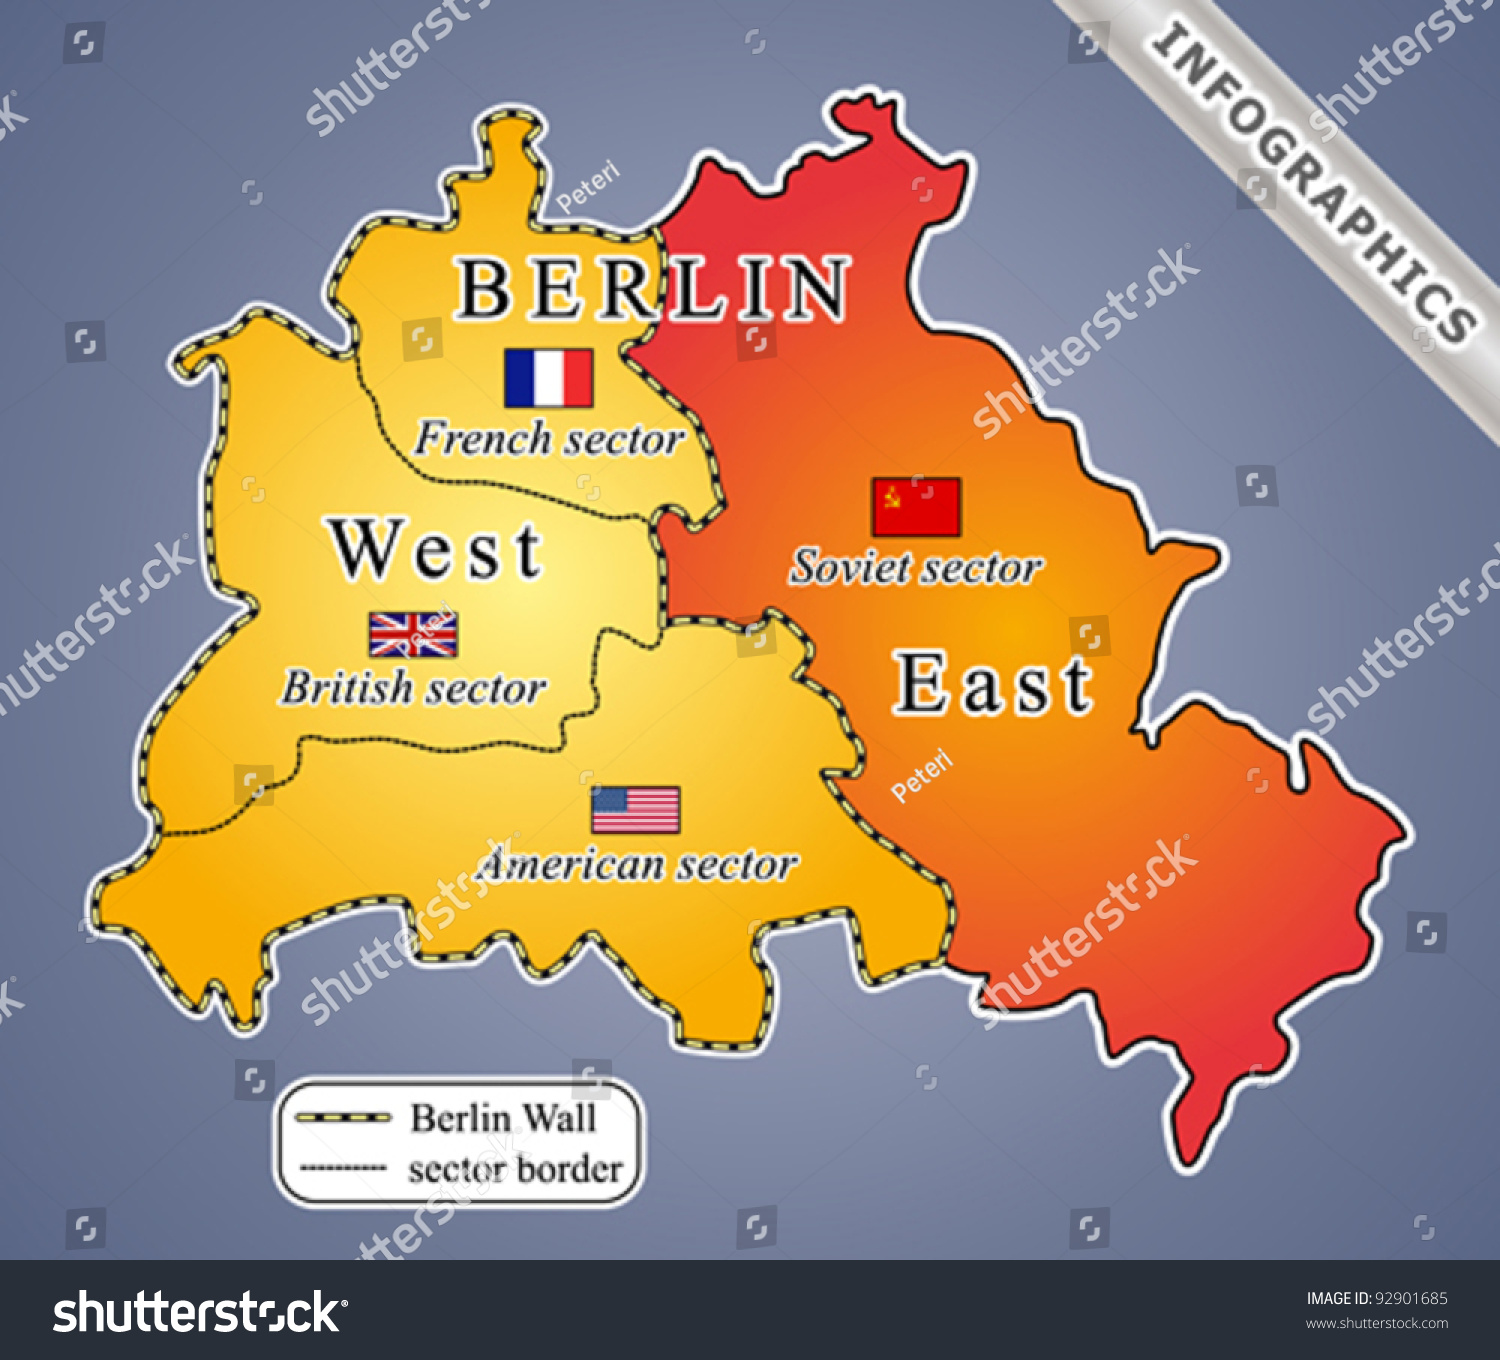 capital city of usa map with Stock Vector Berlin Map During Cold War Including The Berlin Wall Infographics Map Fully Editable Vector Data on Manama also Magnifika Madagaskar additionally Kings Of Tallinn Poker Festival 2015 20634 besides Serbia additionally Stock Vector Berlin Map During Cold War Including The Berlin Wall Infographics Map Fully Editable Vector Data.